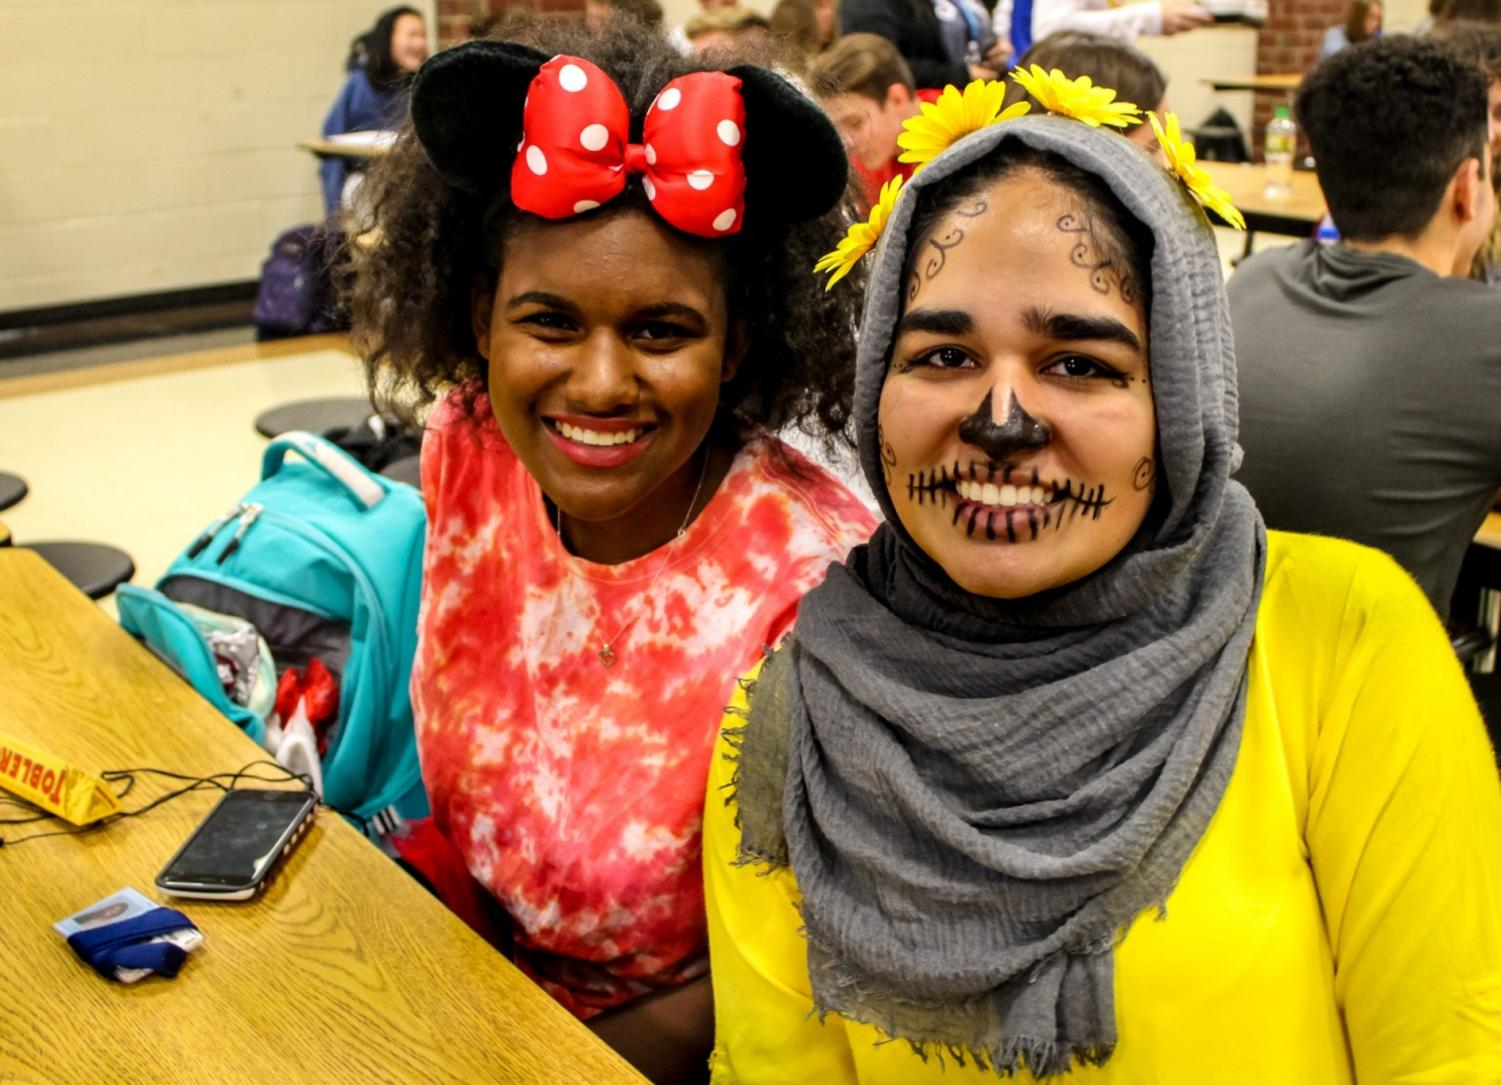 Cambridge students did not disappoint in showing their Halloween pride.  Picture here are junior Kimberly Poinsette as Minnie Mouse and junior Duaa Tariq as a